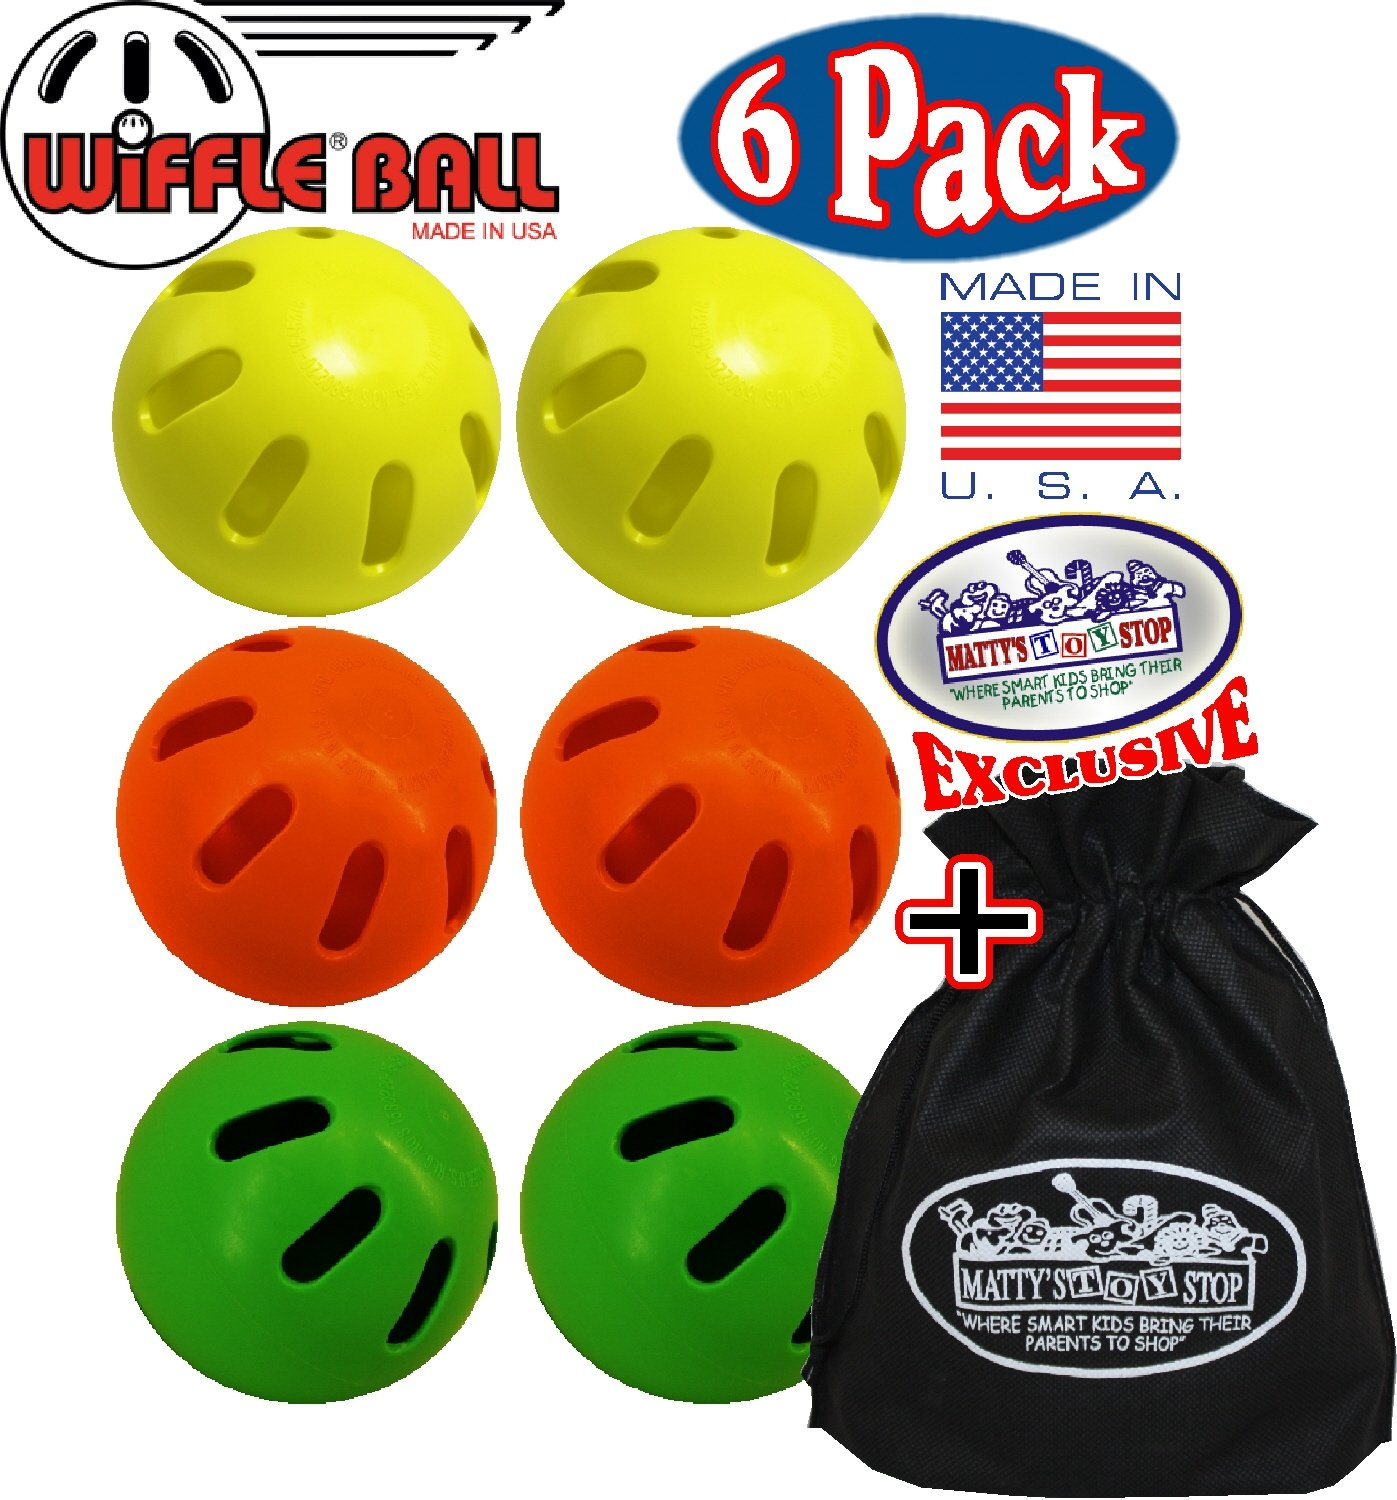 Matty's Toy Stop Wiffle Balls Yellow, Green & Orange Official Size Baseballs Set Bundle with Storage Bag - 6 Pack (2 Yellow, 2 Green & 2 Orange)